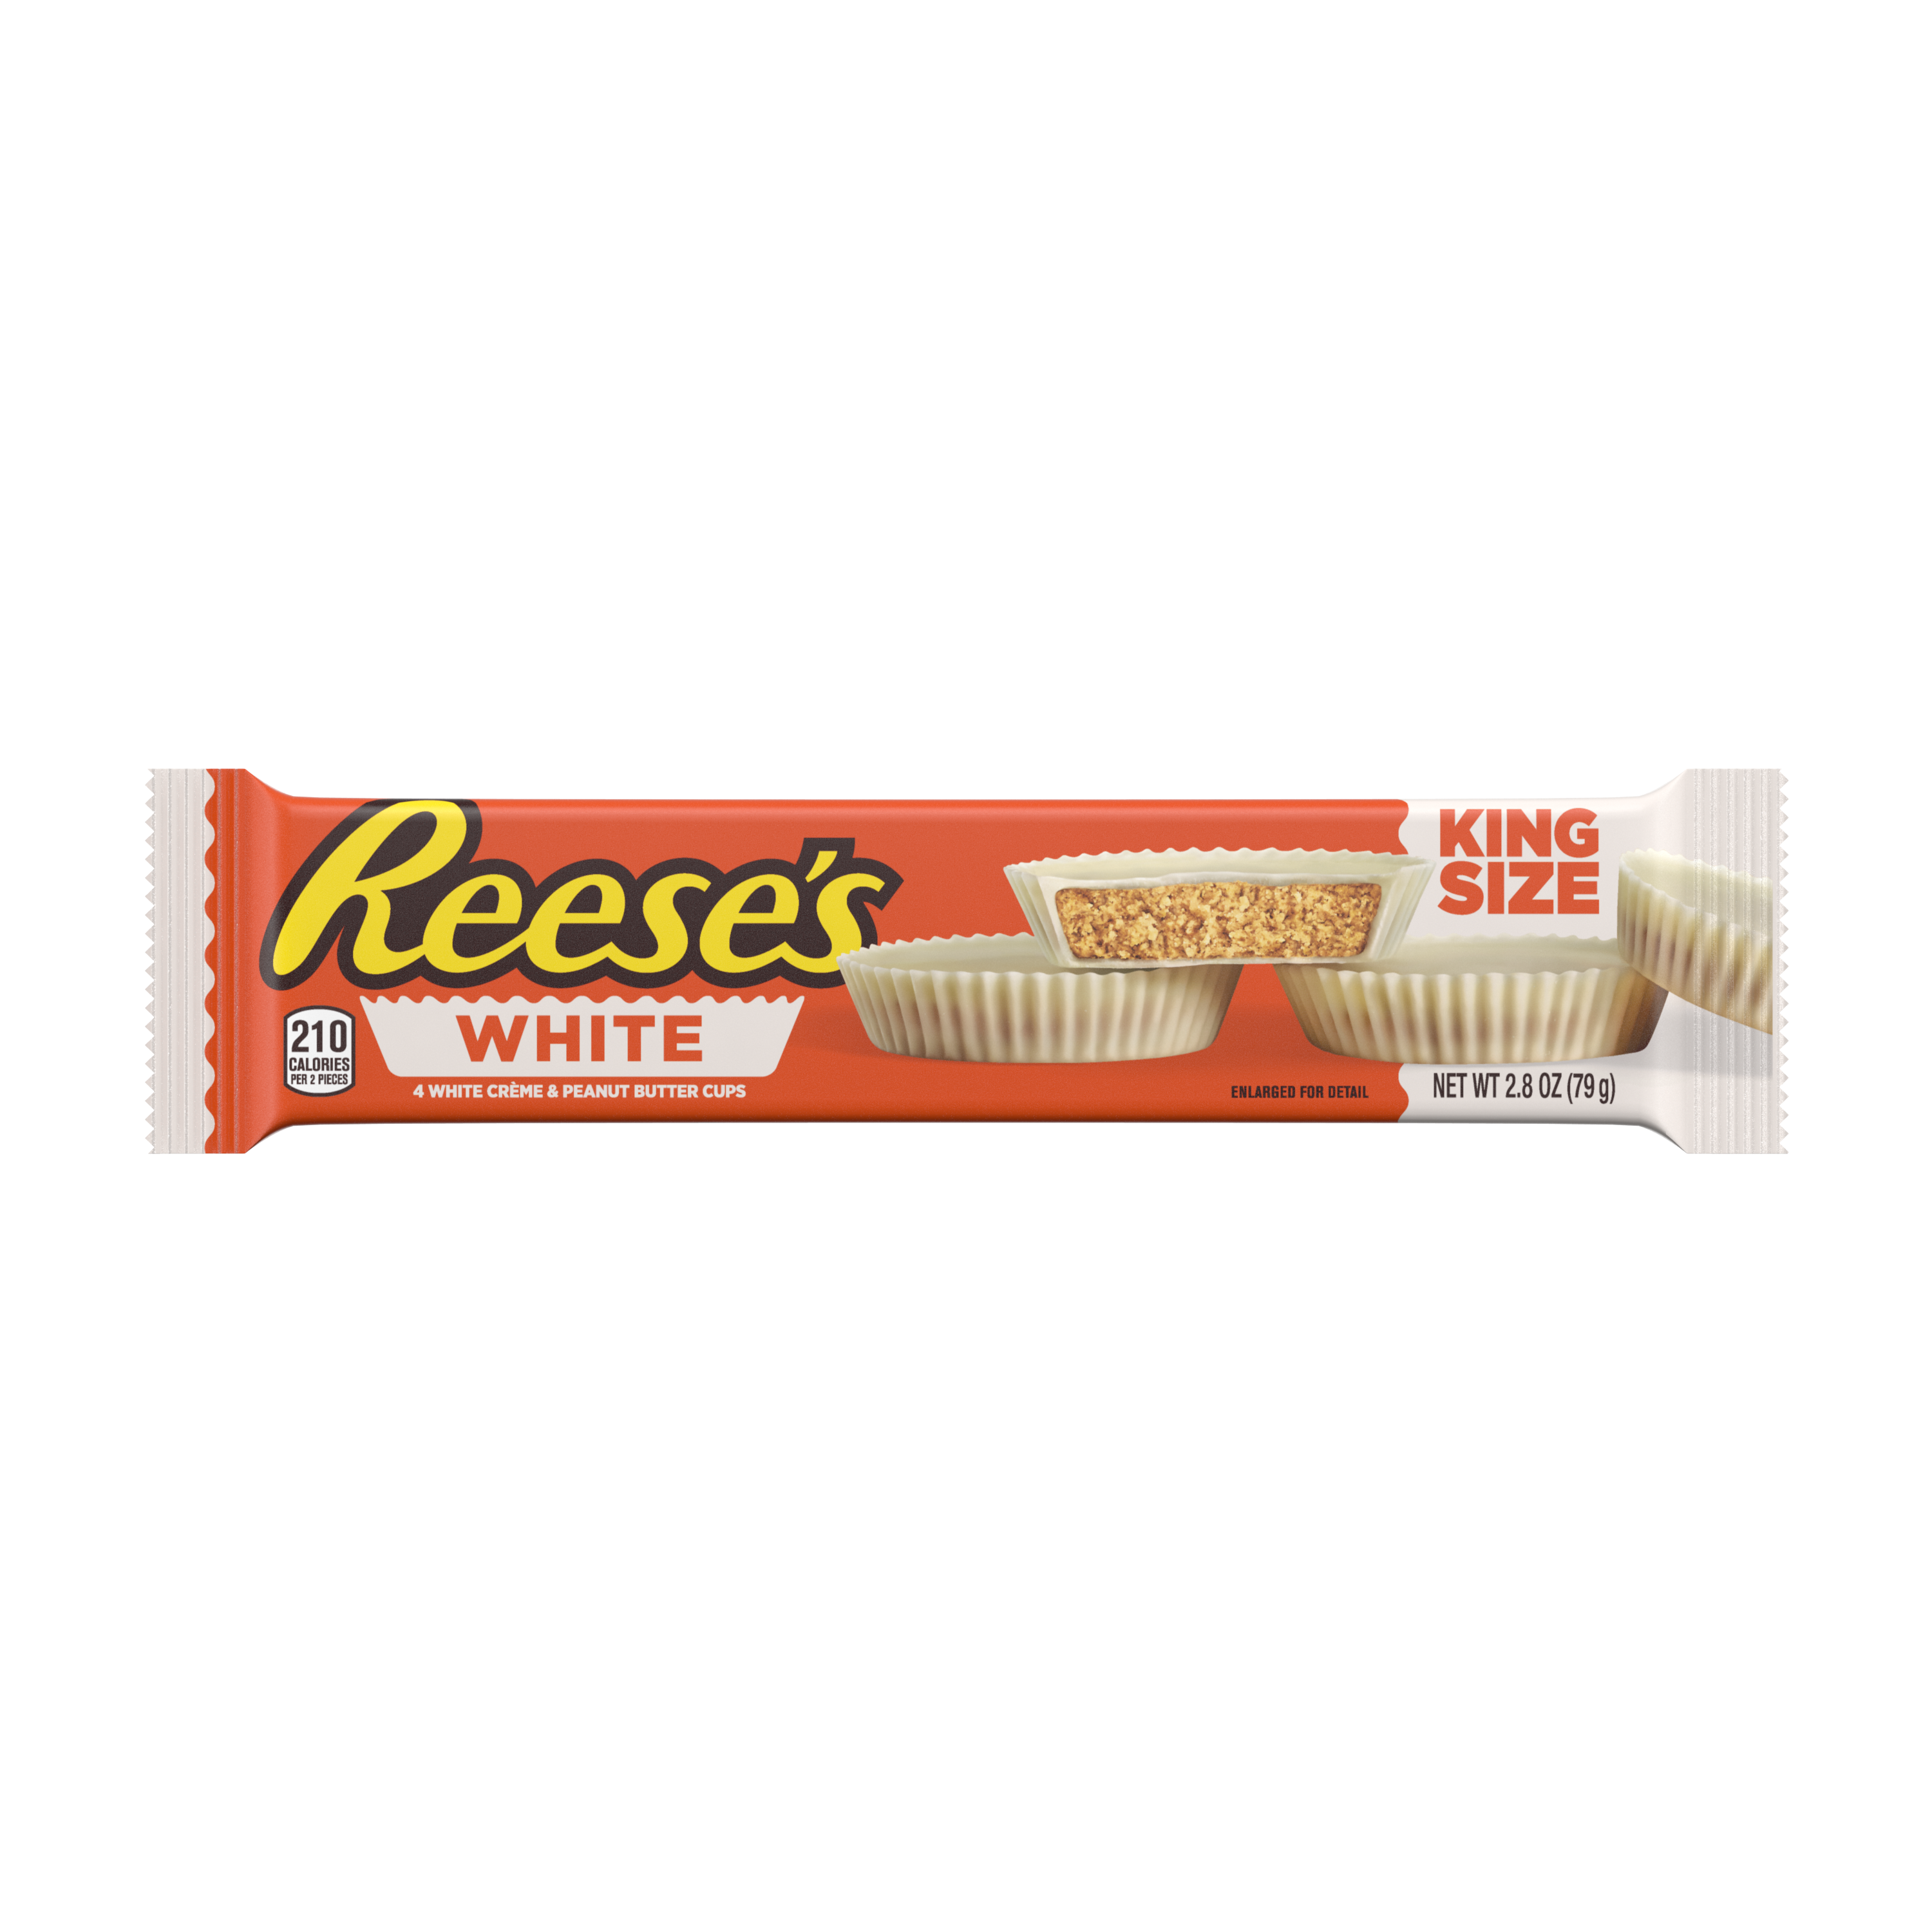 REESE'S White Creme King Size Peanut Butter Cups, 2.8 oz - Front of Package